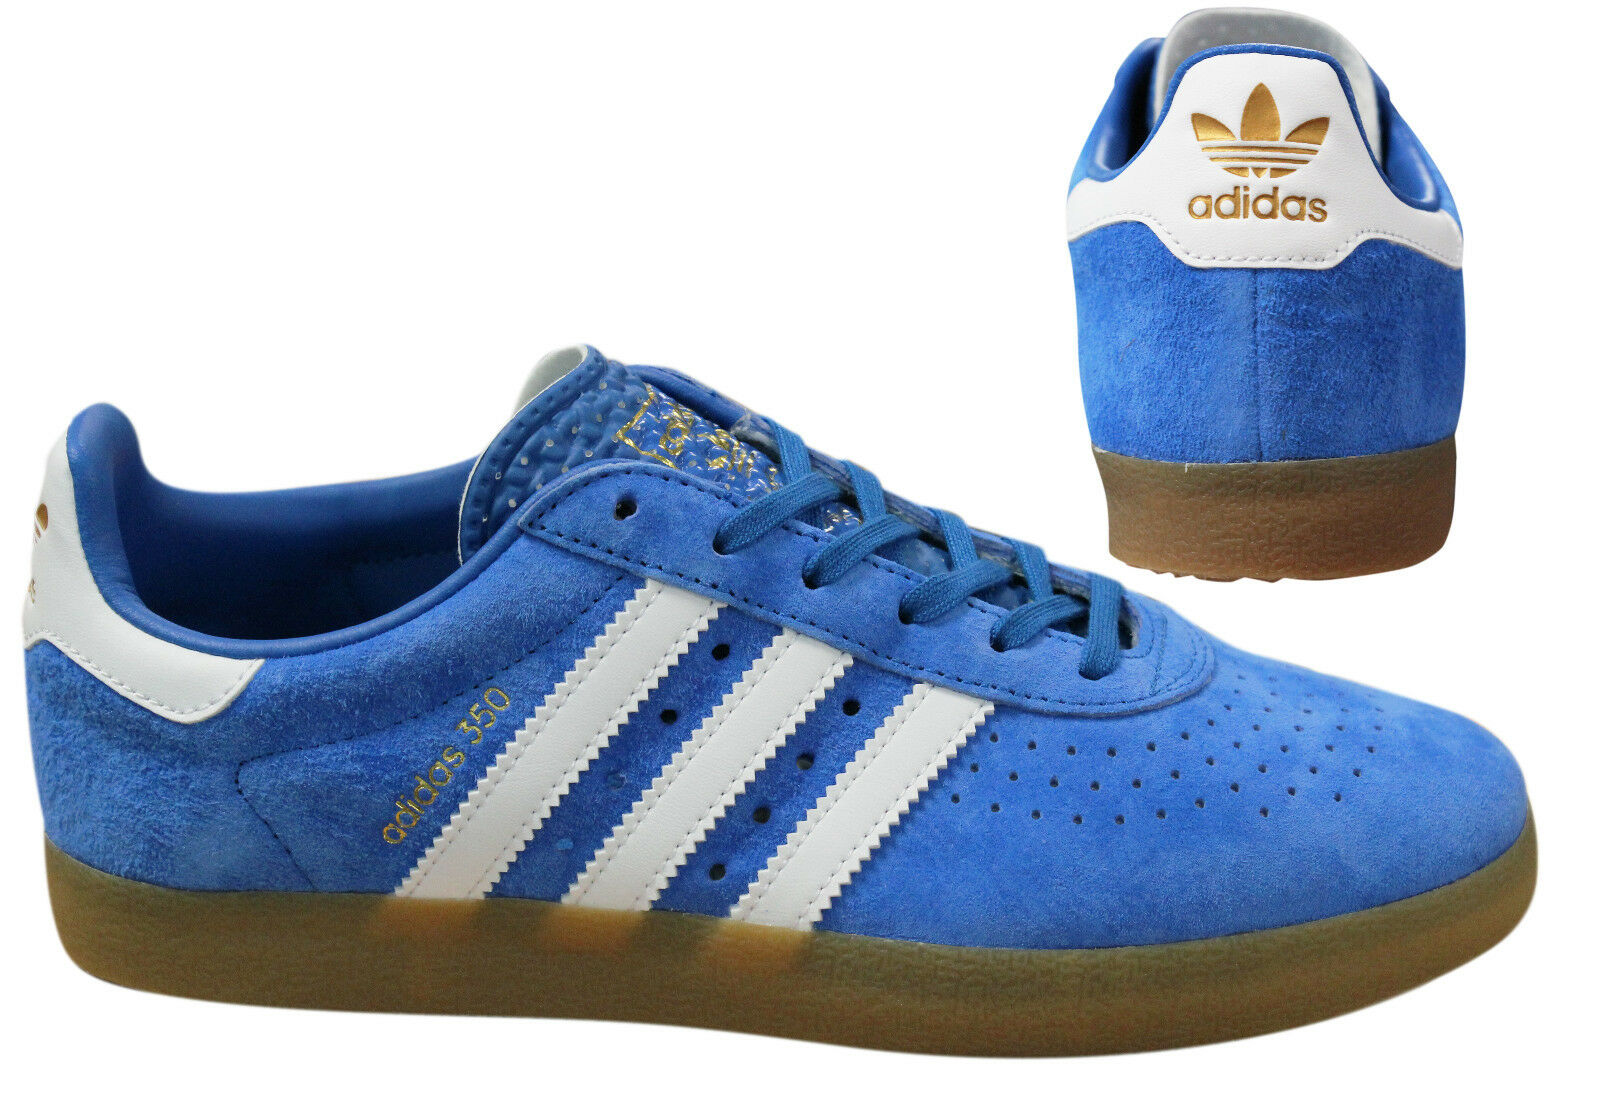 c16e71ebb Adidas Originals 350 Mens Trainers Lace Up Shoes Easy Blue BY1862 ...